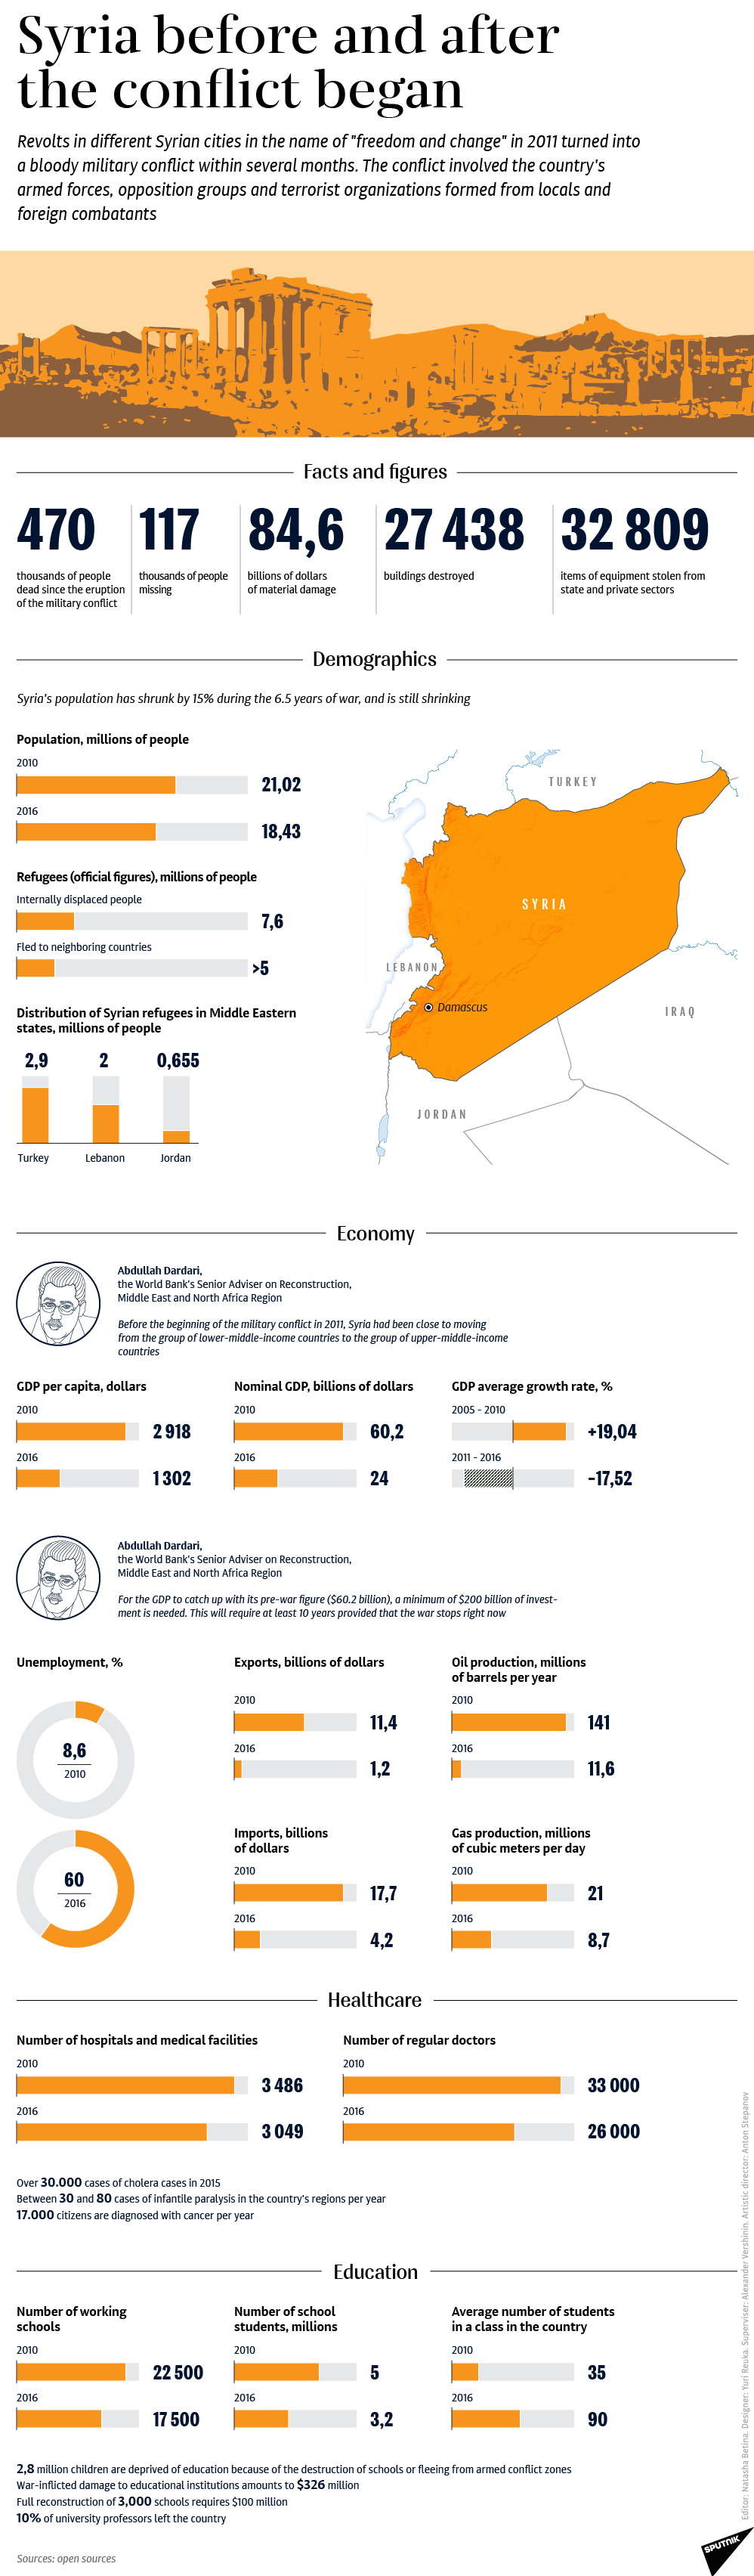 Syria in facts and figures